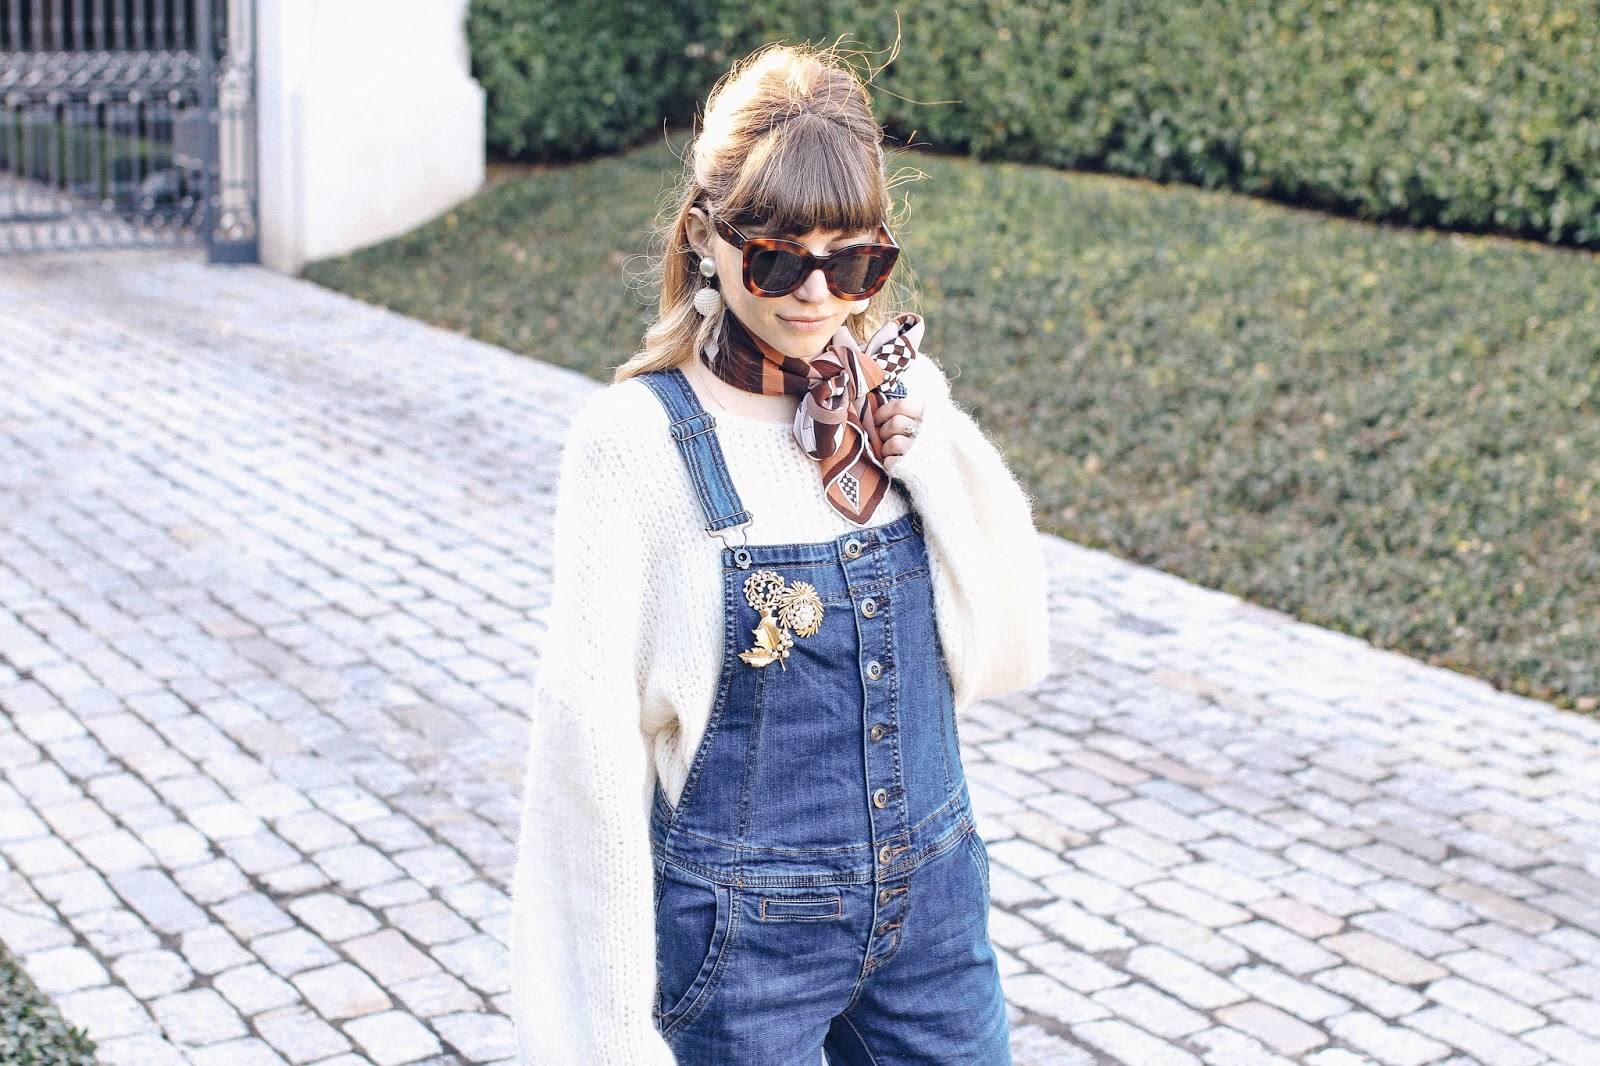 Put a Pin On It: A Brooch That Is (Pearl brooches on denim overalls, sweater, and scarf) | Click through for the details. | glitterinc.com | @glitterinc